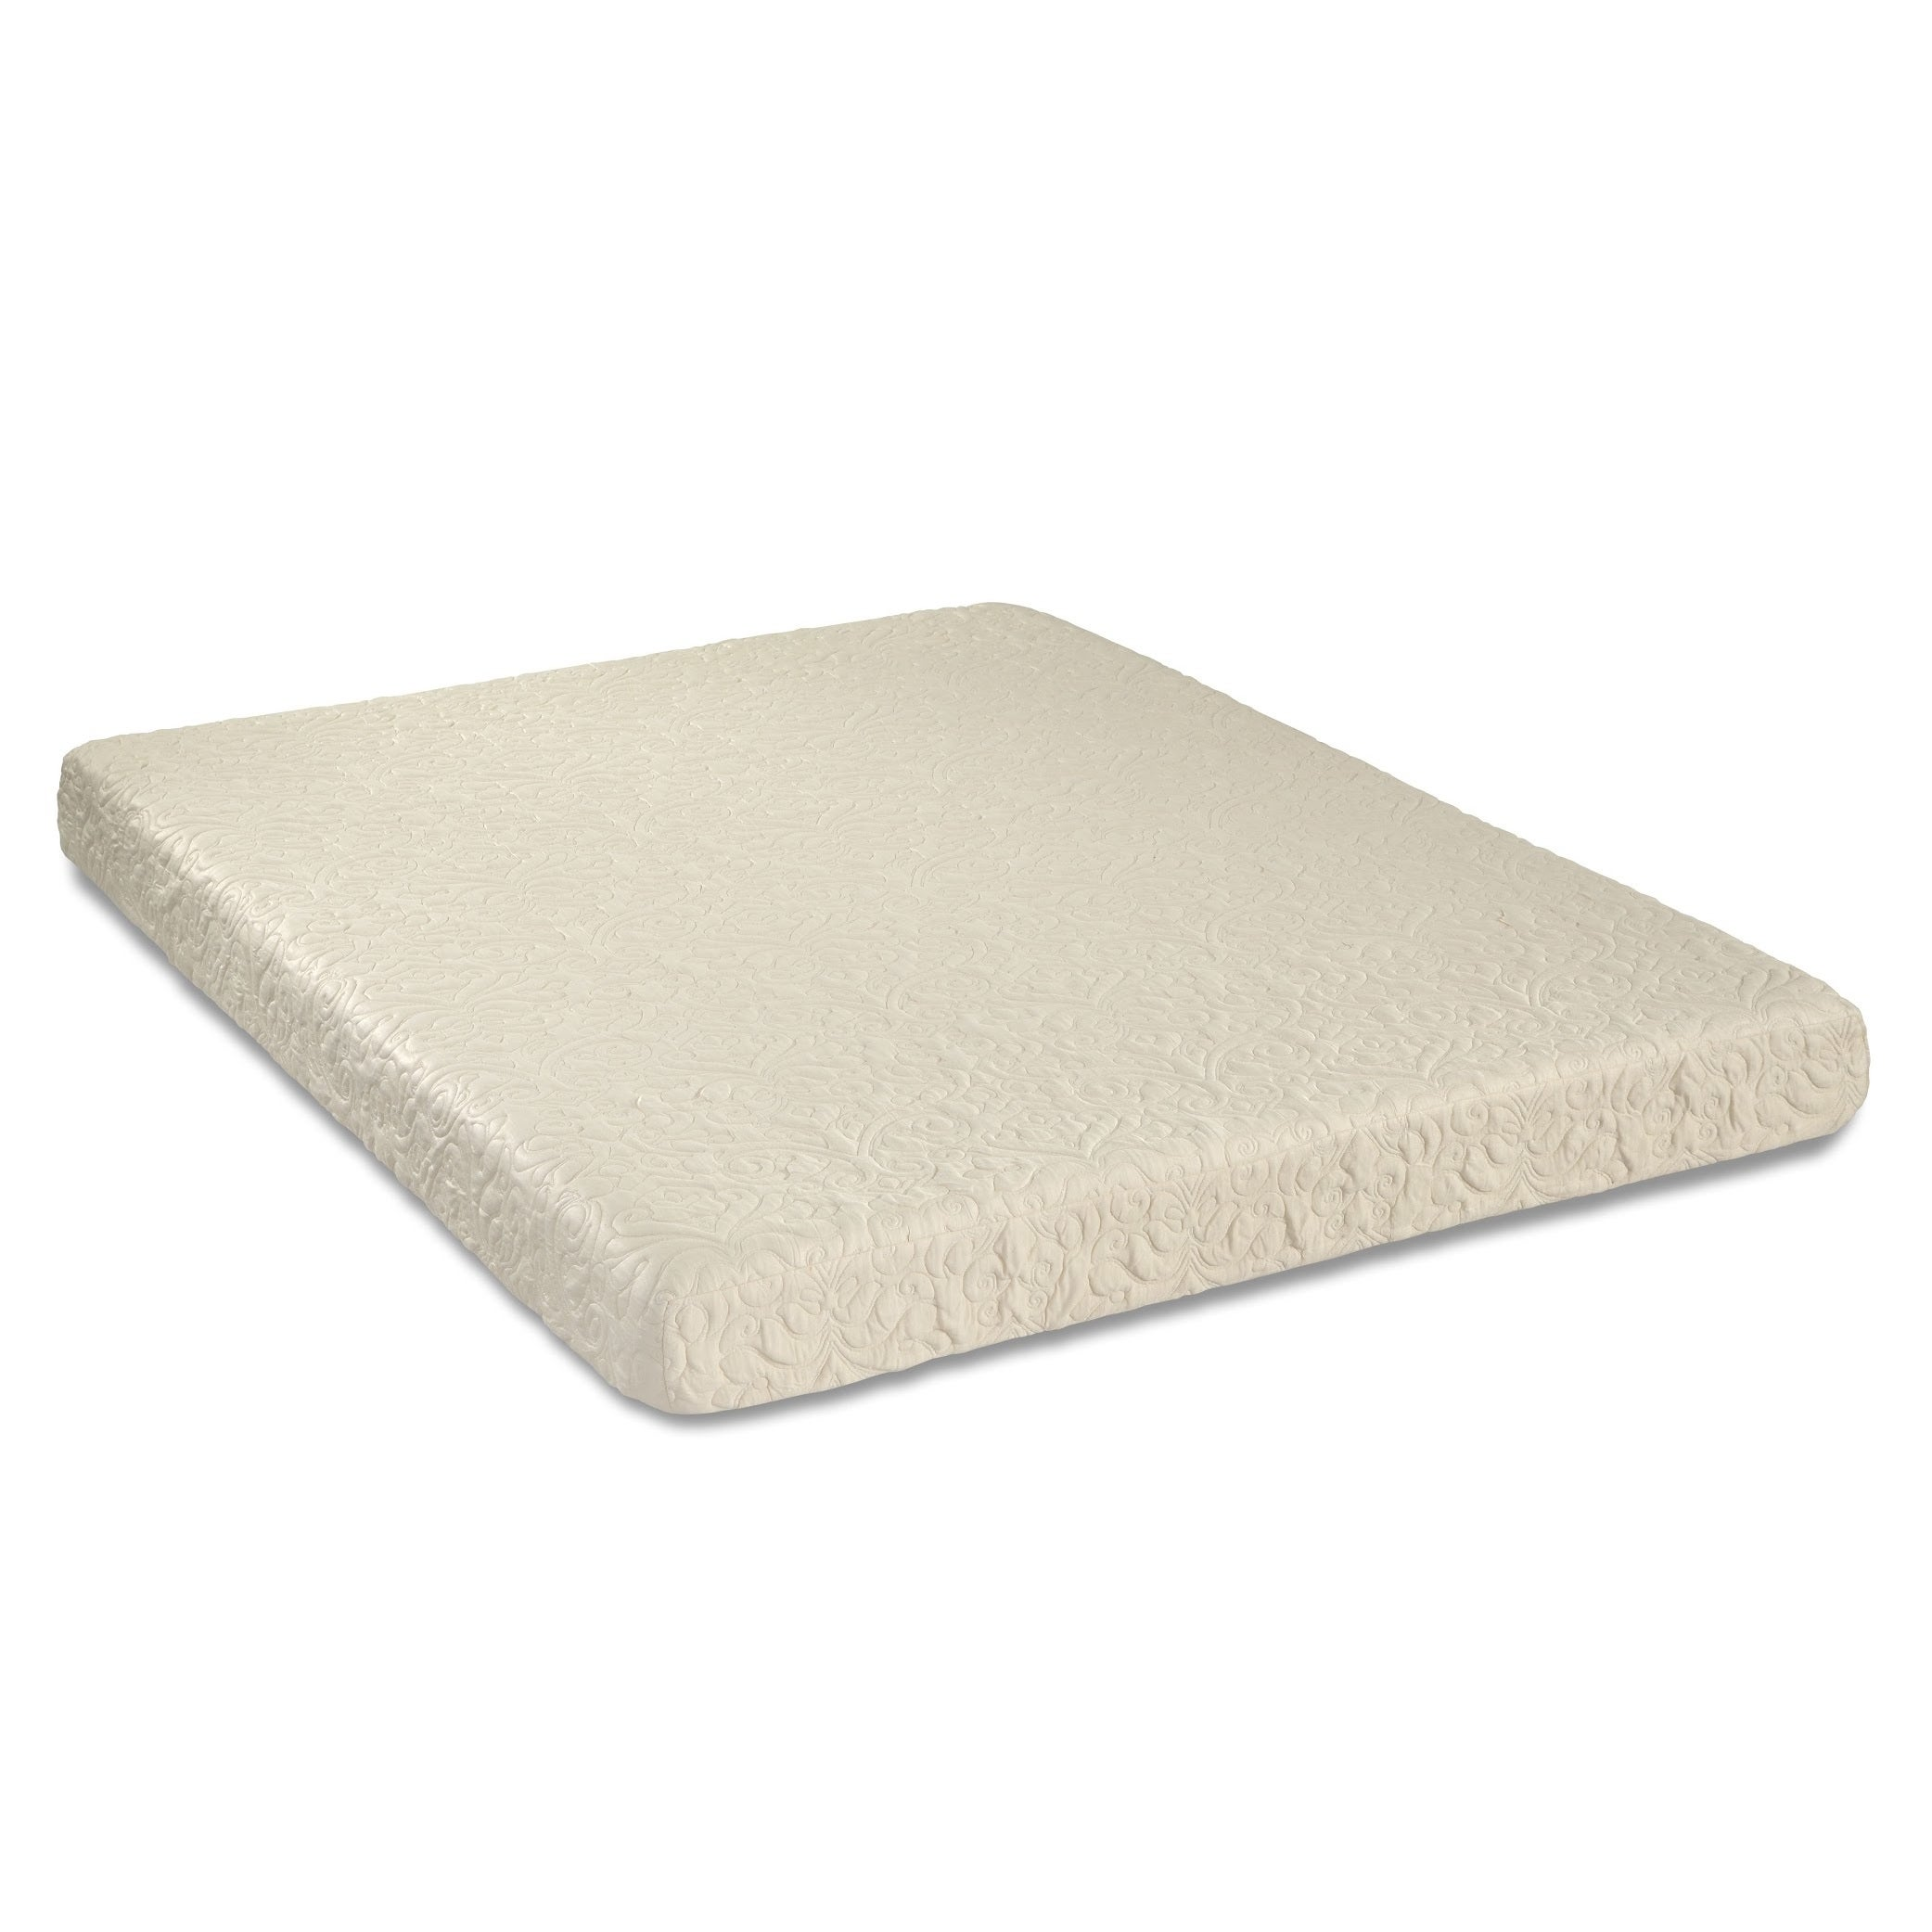 Mlily Dreamer 6 inch Twin size Memory Foam Mattress Free